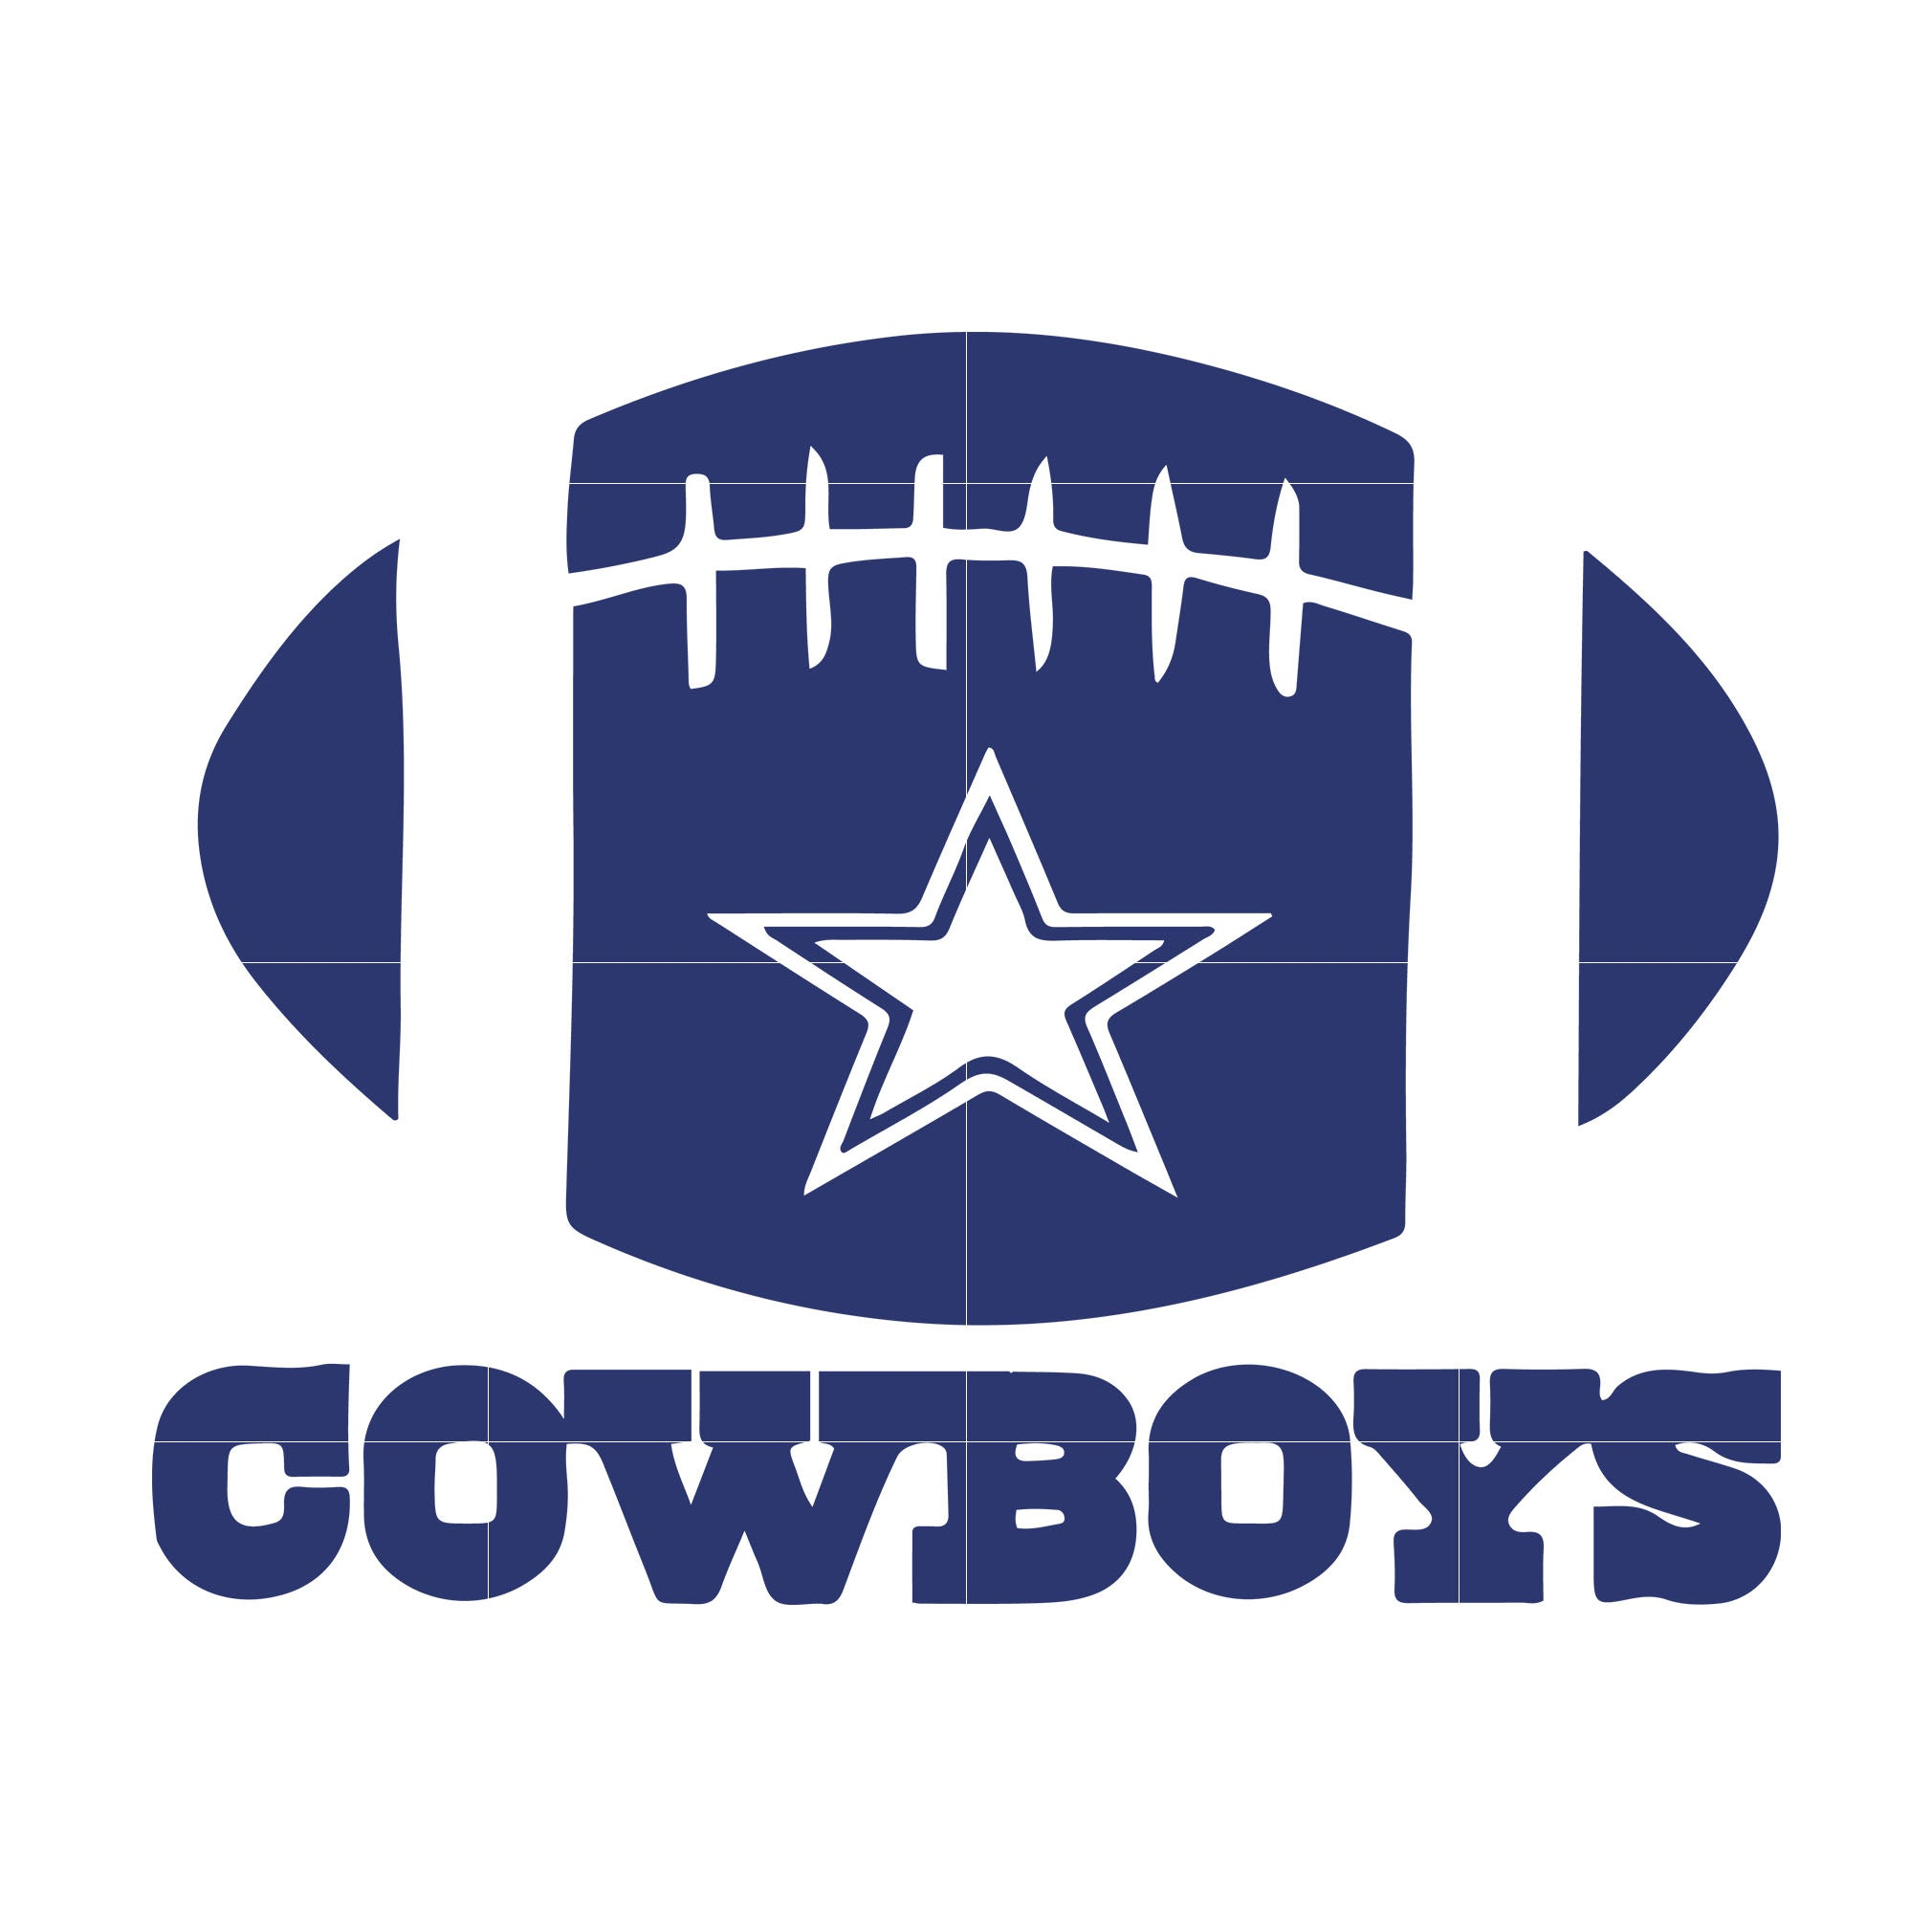 Cowboys ball svg, dallas cowboys svg, cowboys svg for cut